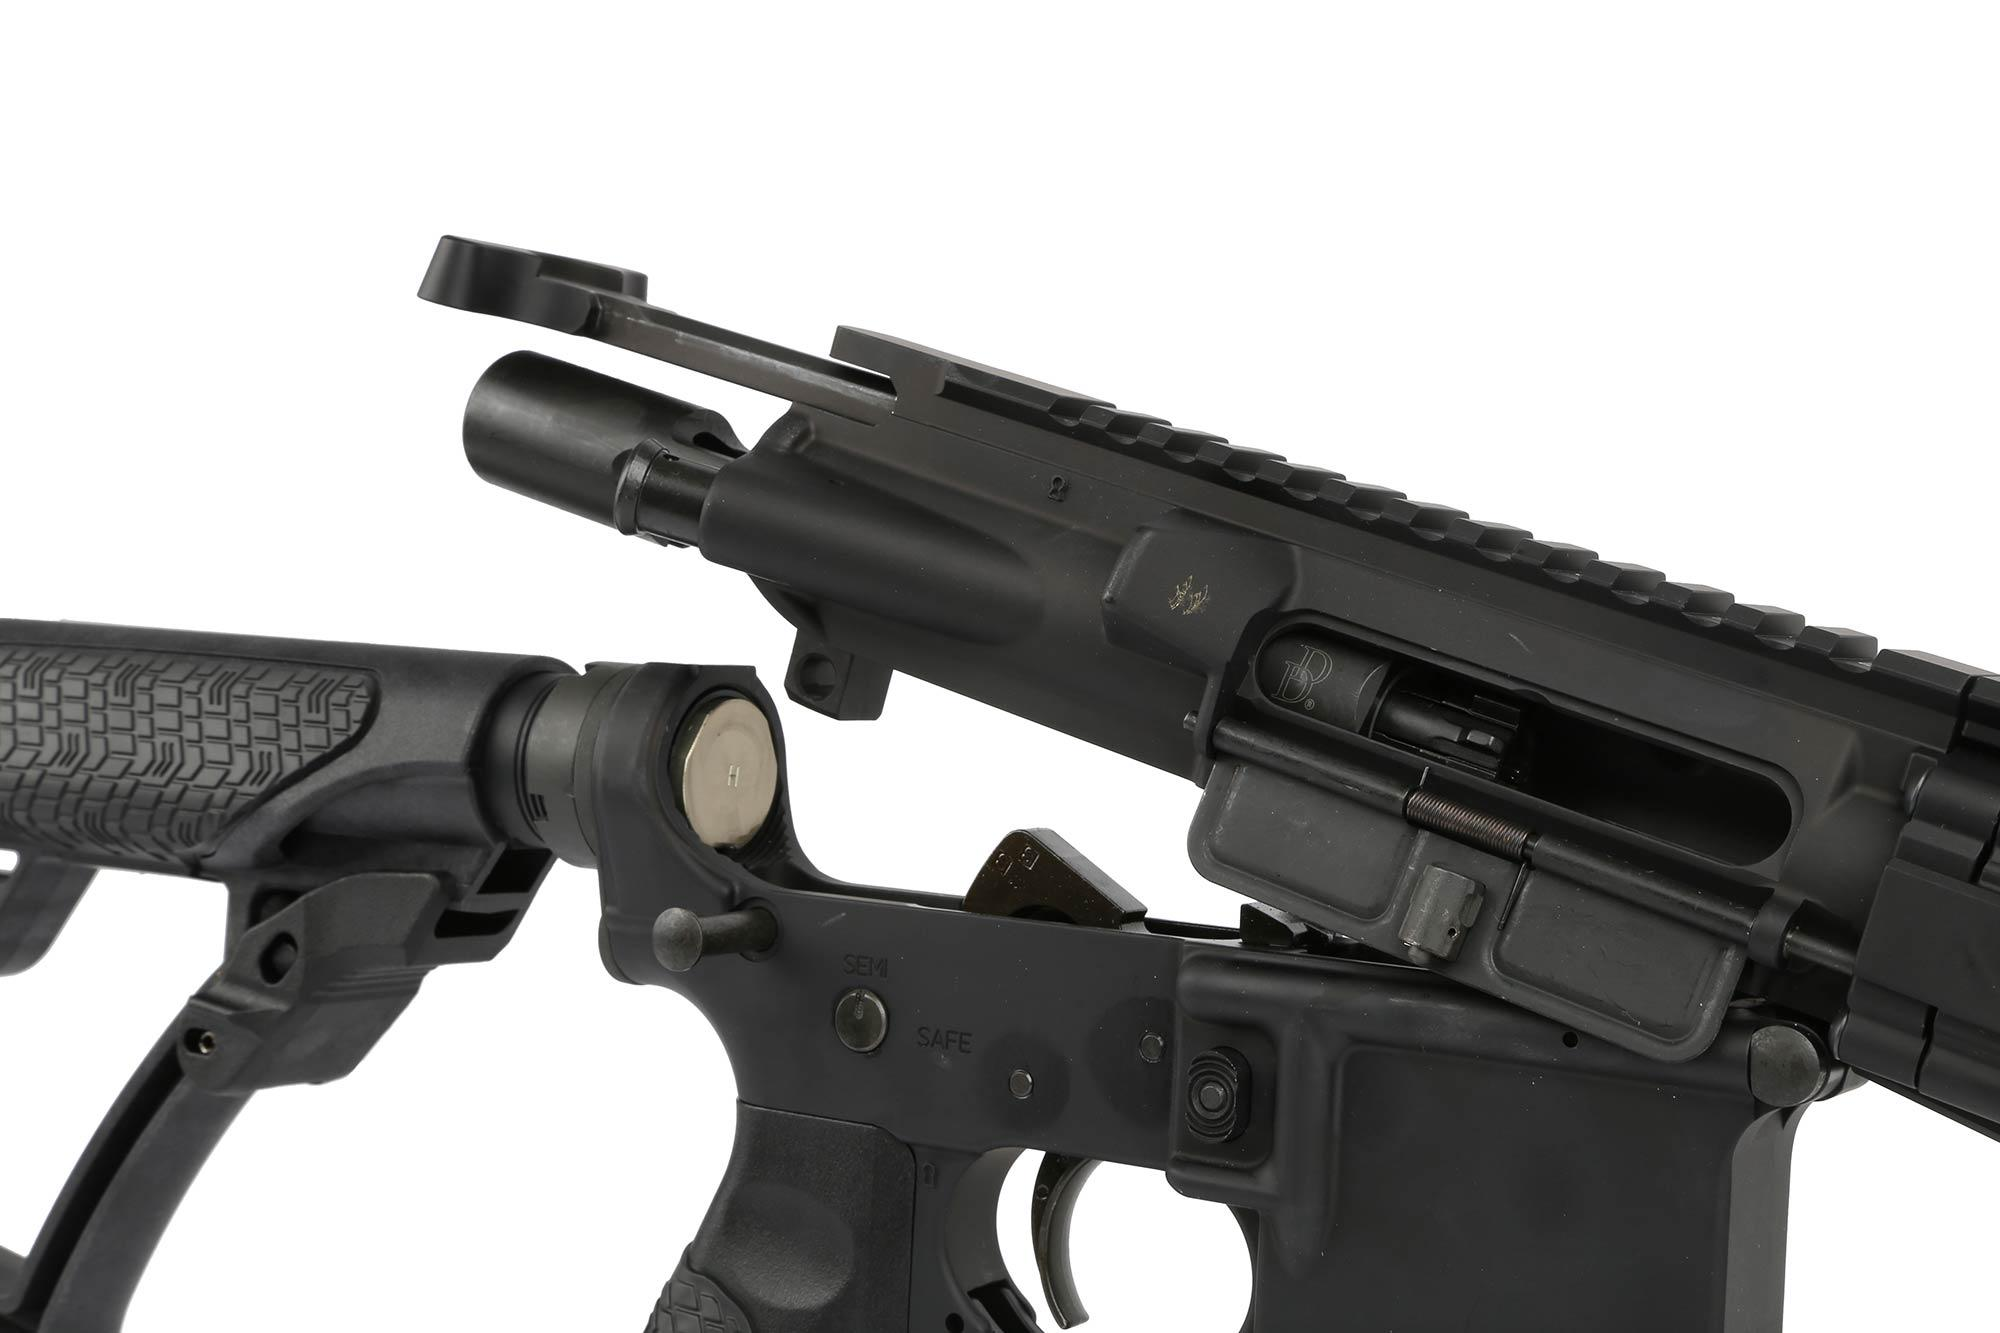 The Daniel Defense DDM4 300s for sale features an M16 chrome lined bolt carrier group